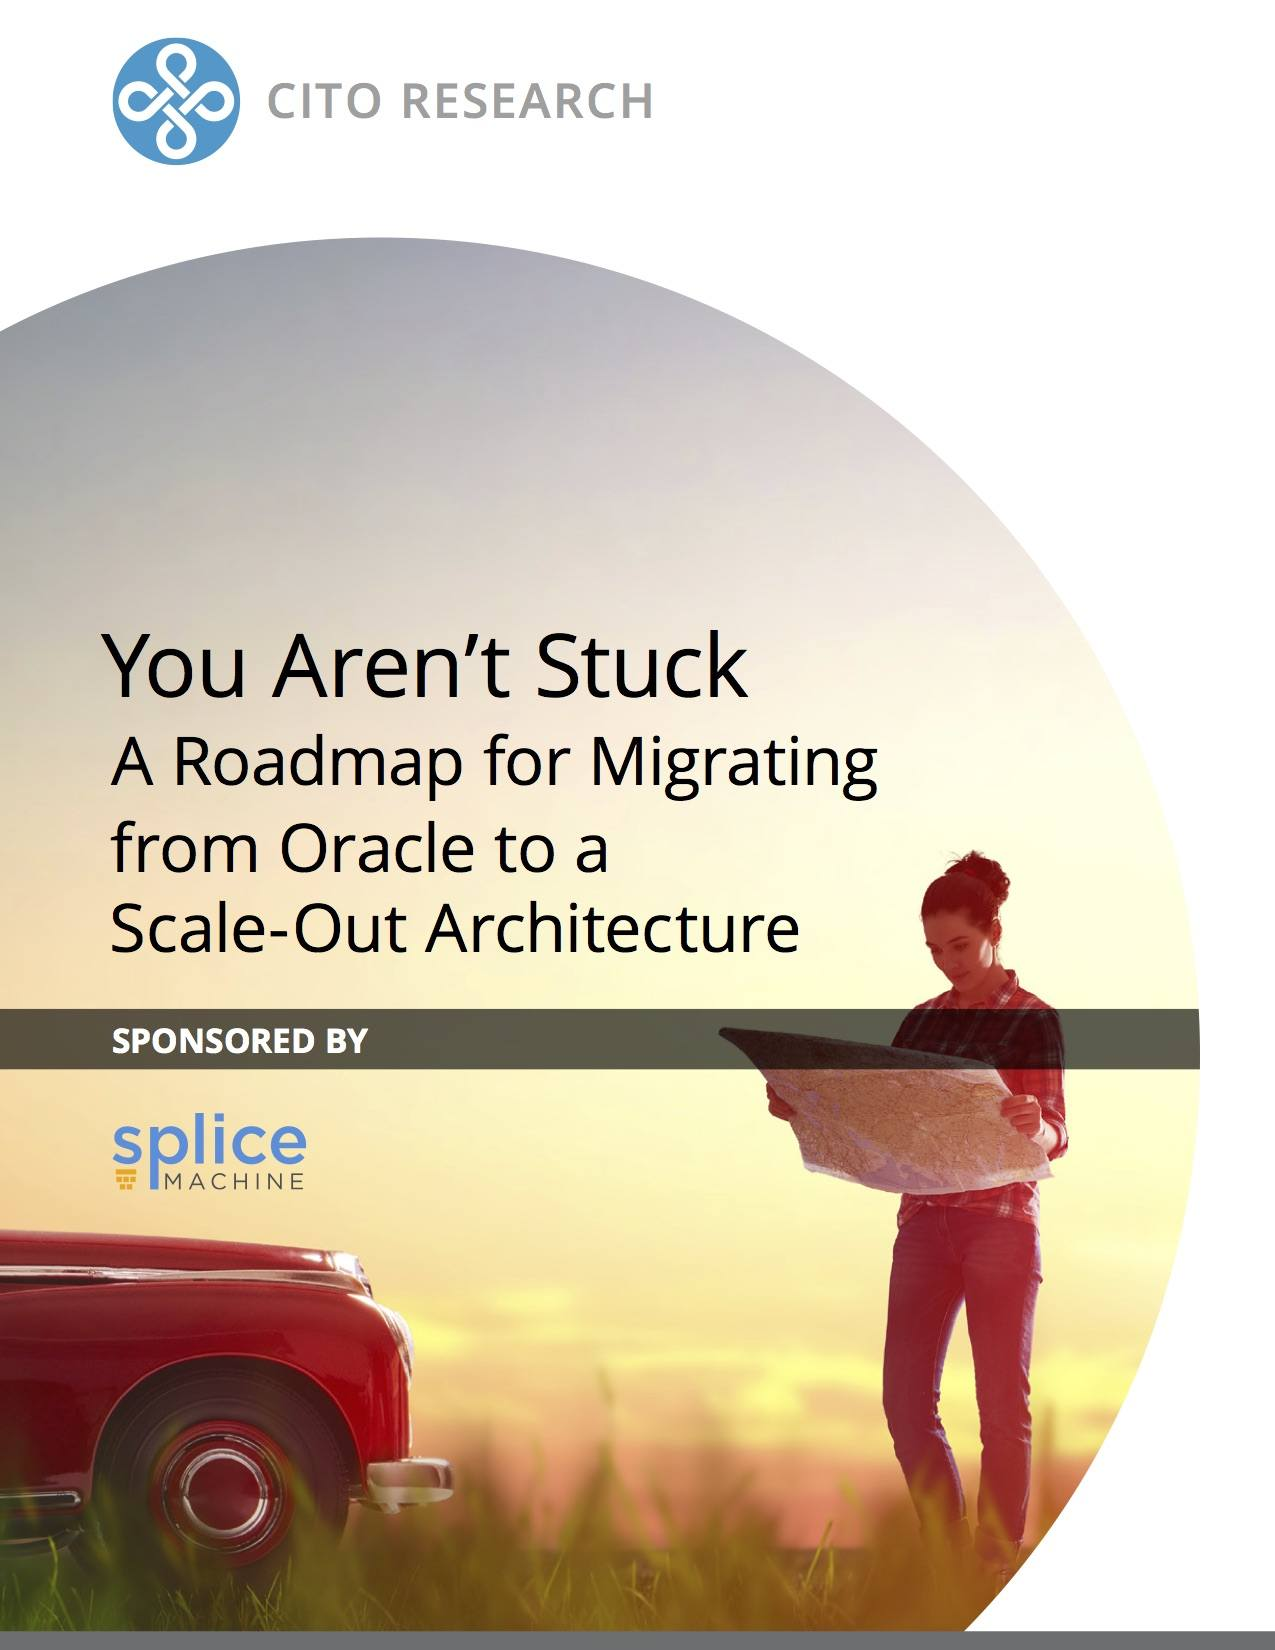 Migrating from Oracle